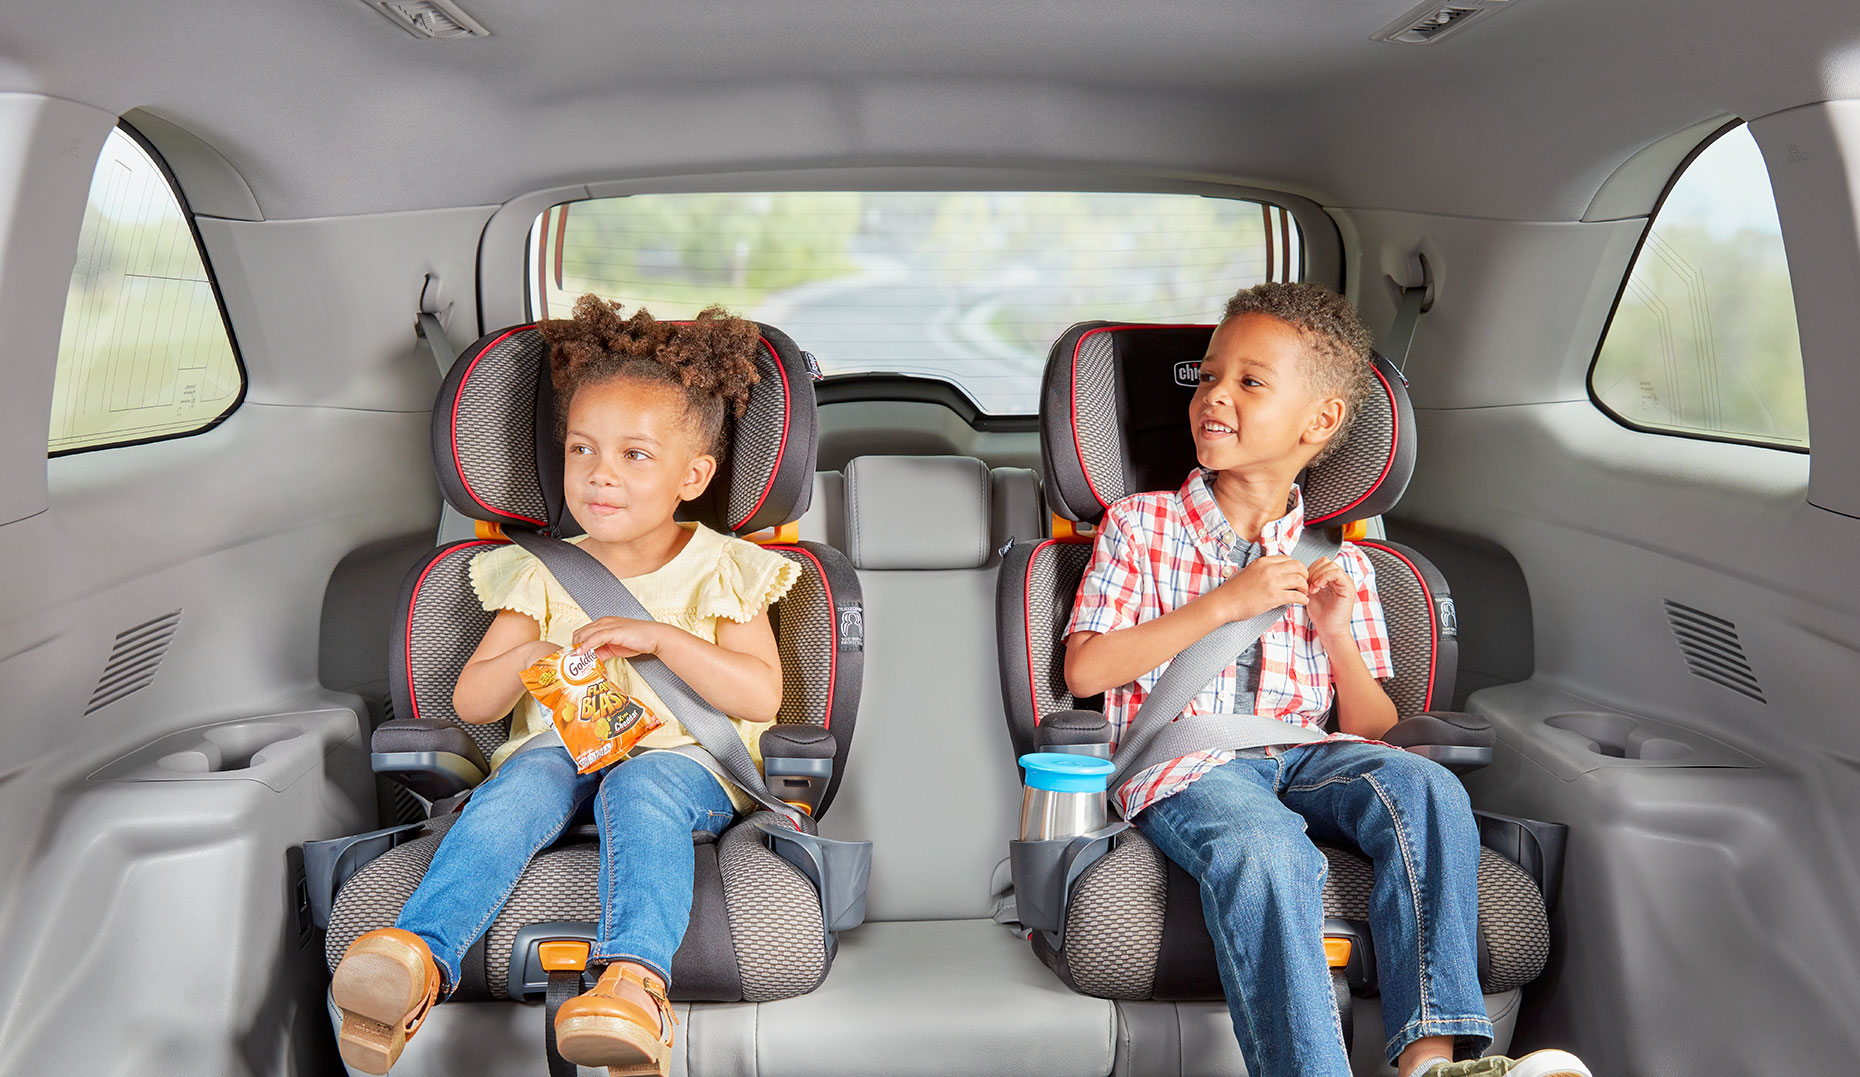 41461-CarSeatEvolution-CarSeats-Lifestyle_crp2